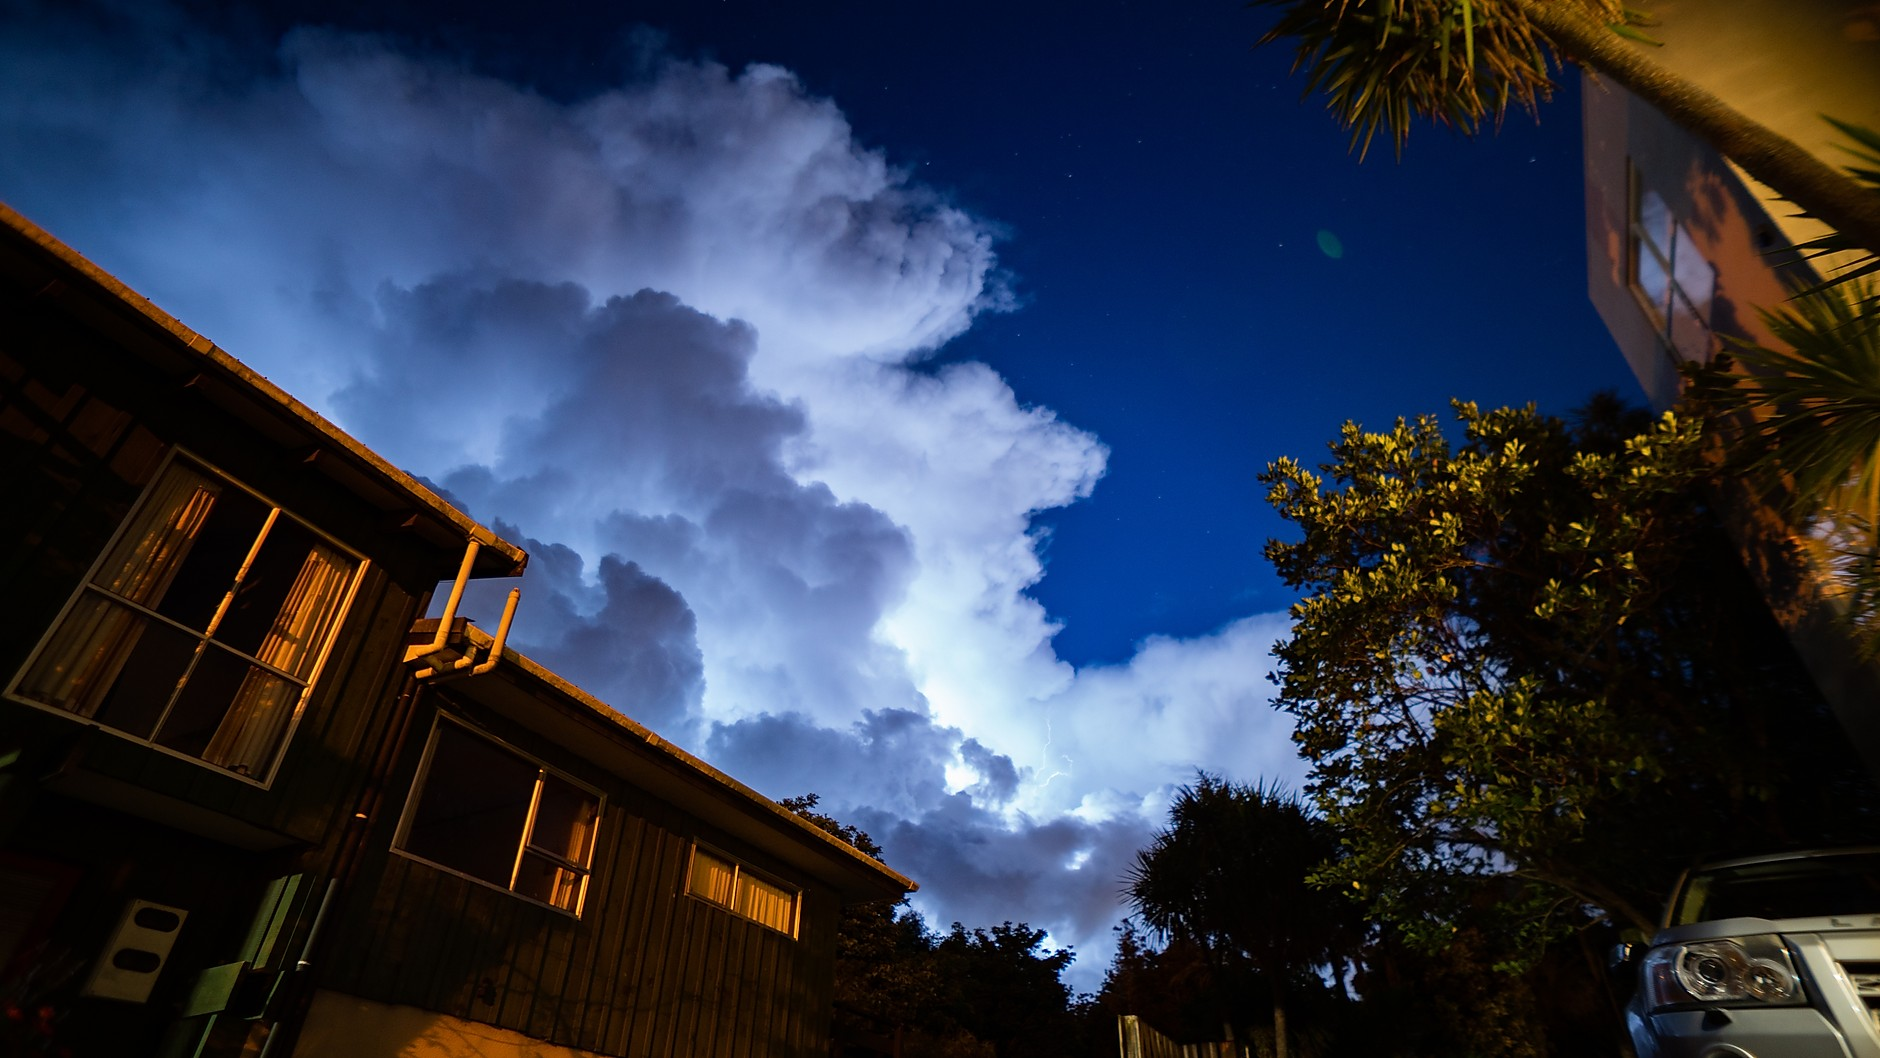 Electrical storm over Auckland, December 2018